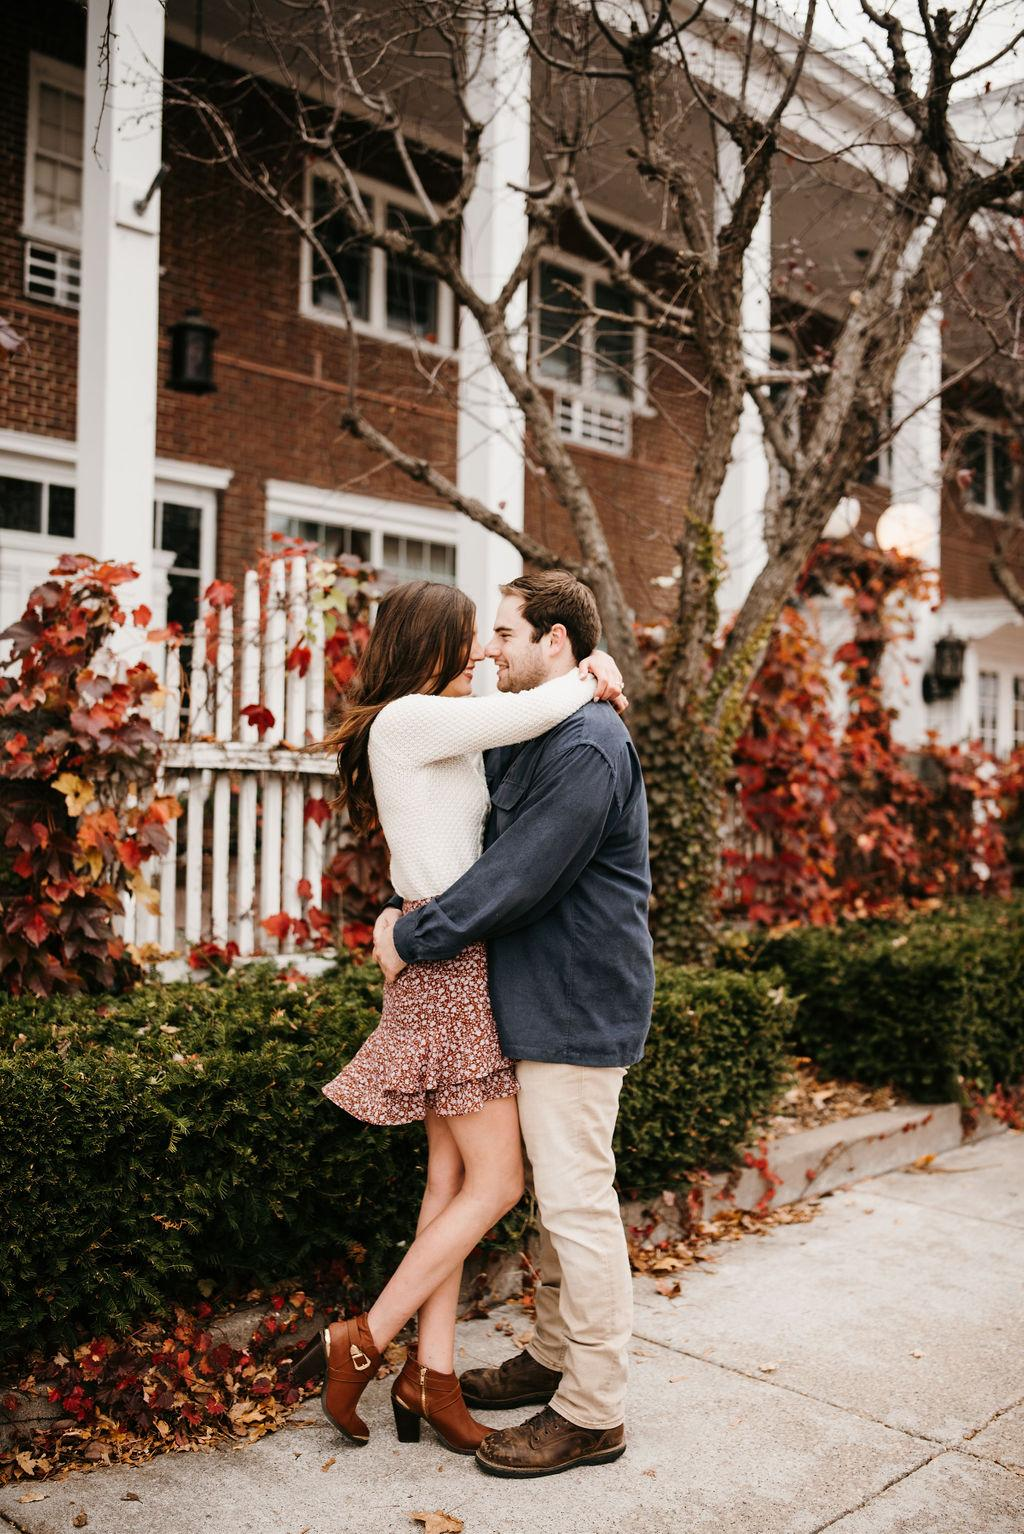 Engagement pictures of Garrett and Morgan in front of a brick building. They are touching noses and hugging.